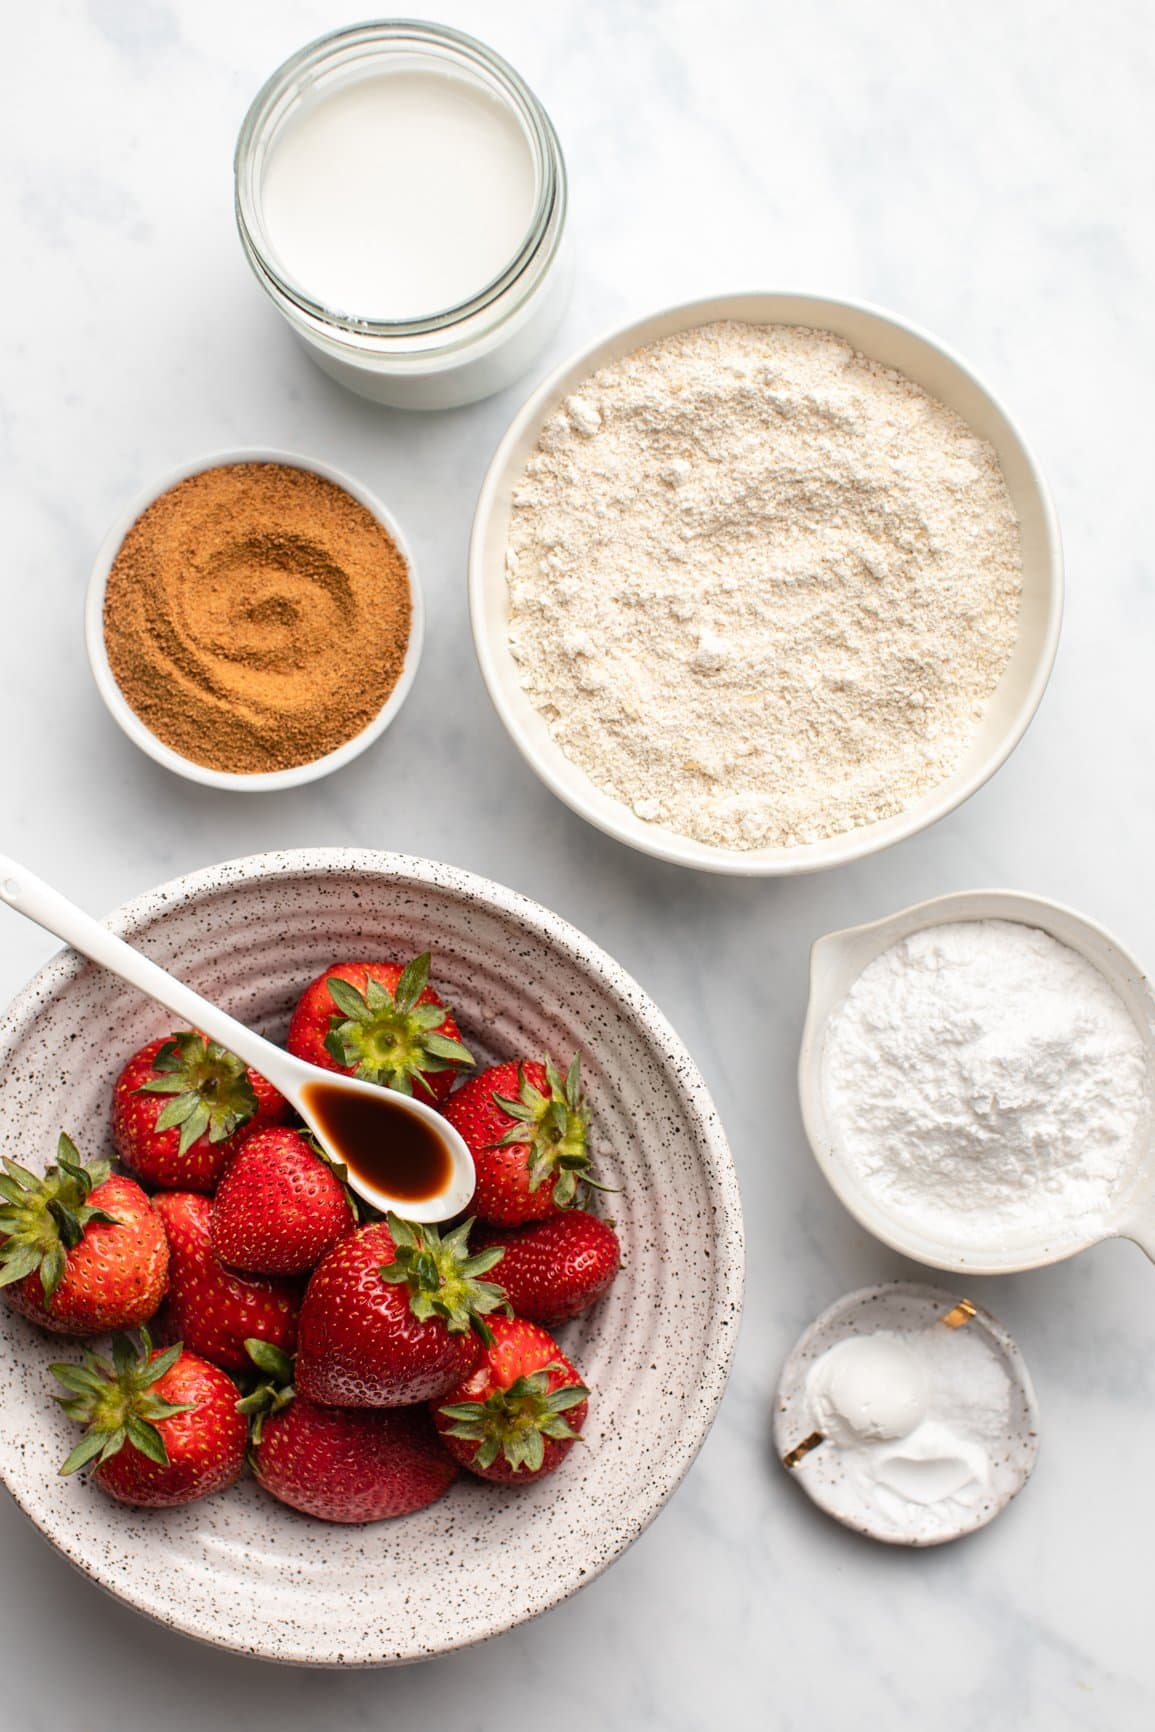 ingredients for strawberry upside down cake in white bowls on marble background